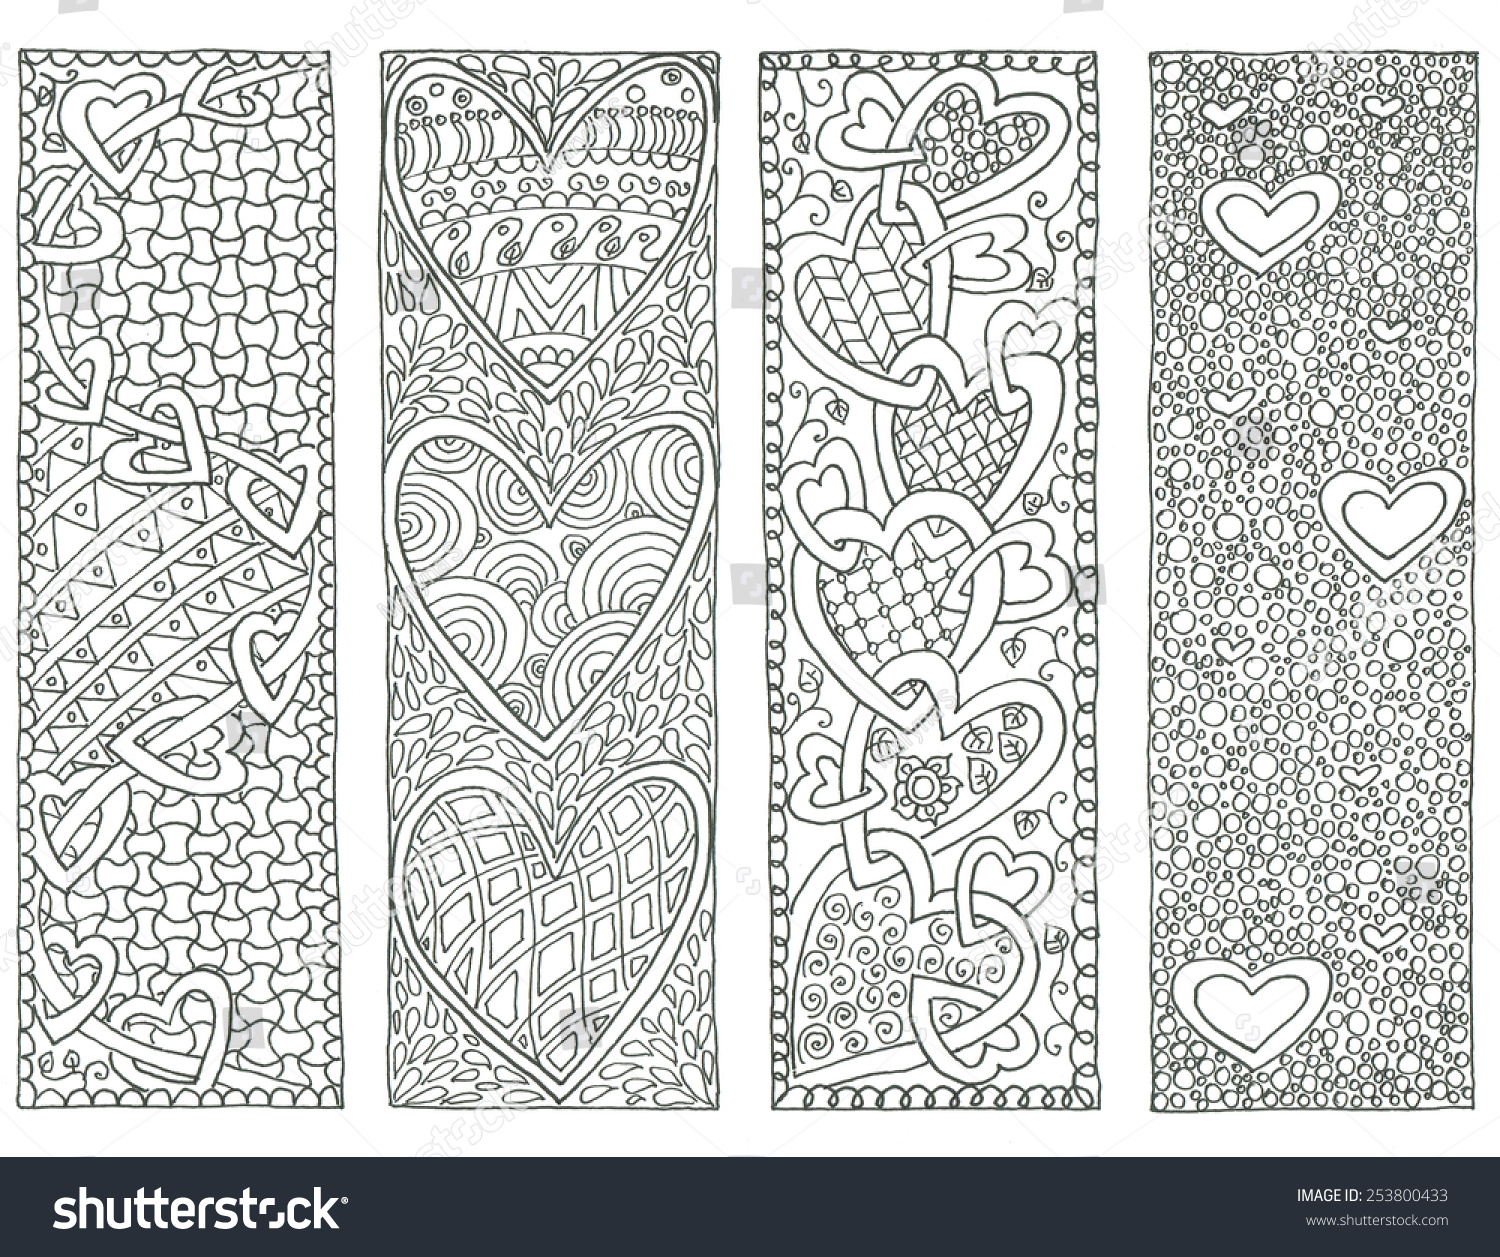 Valentine bookmark to color - Coloring Page Valentines Day Bookmarks Stock Illustration